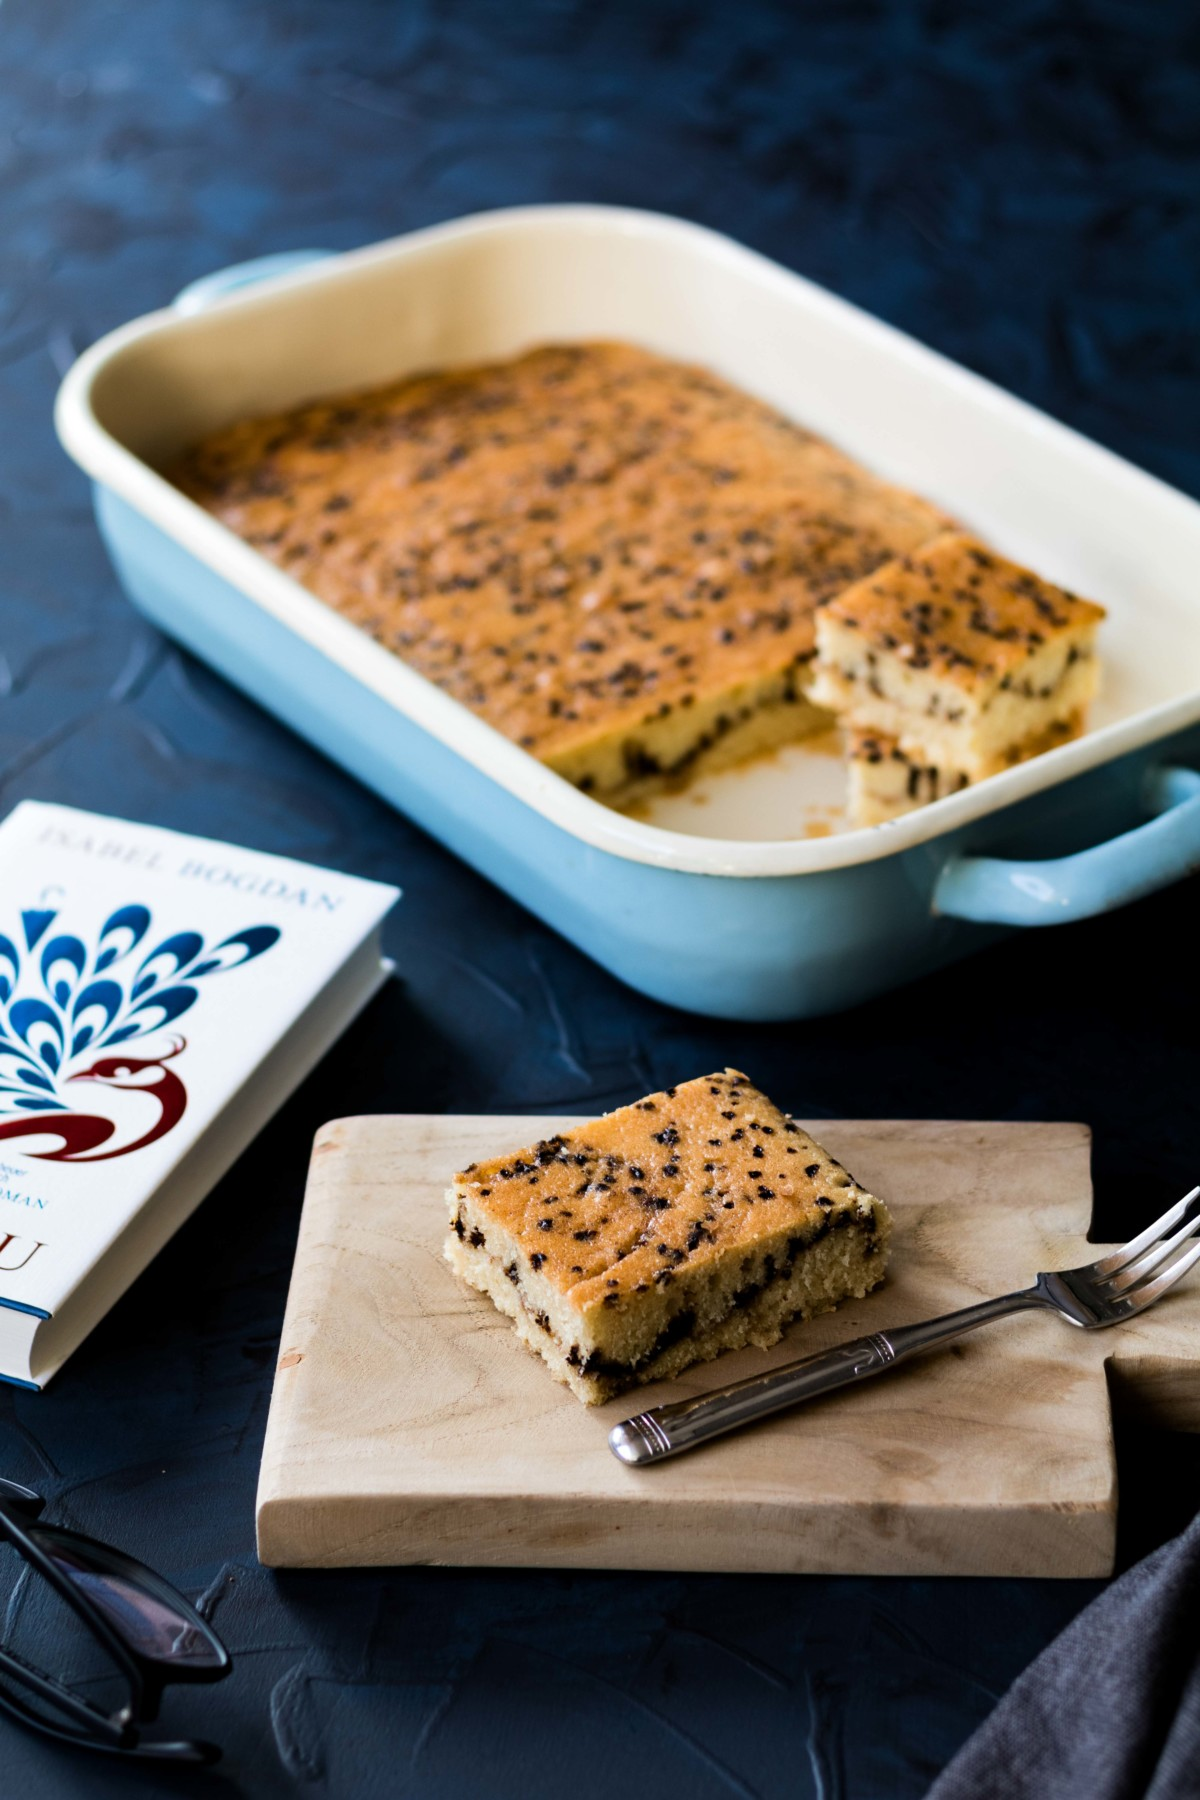 Kaffee-Zimt-Kuchen // Coffee and Cinnamon Cake by http://babyrockmyday.com/kaffee-zimt-kuchen/